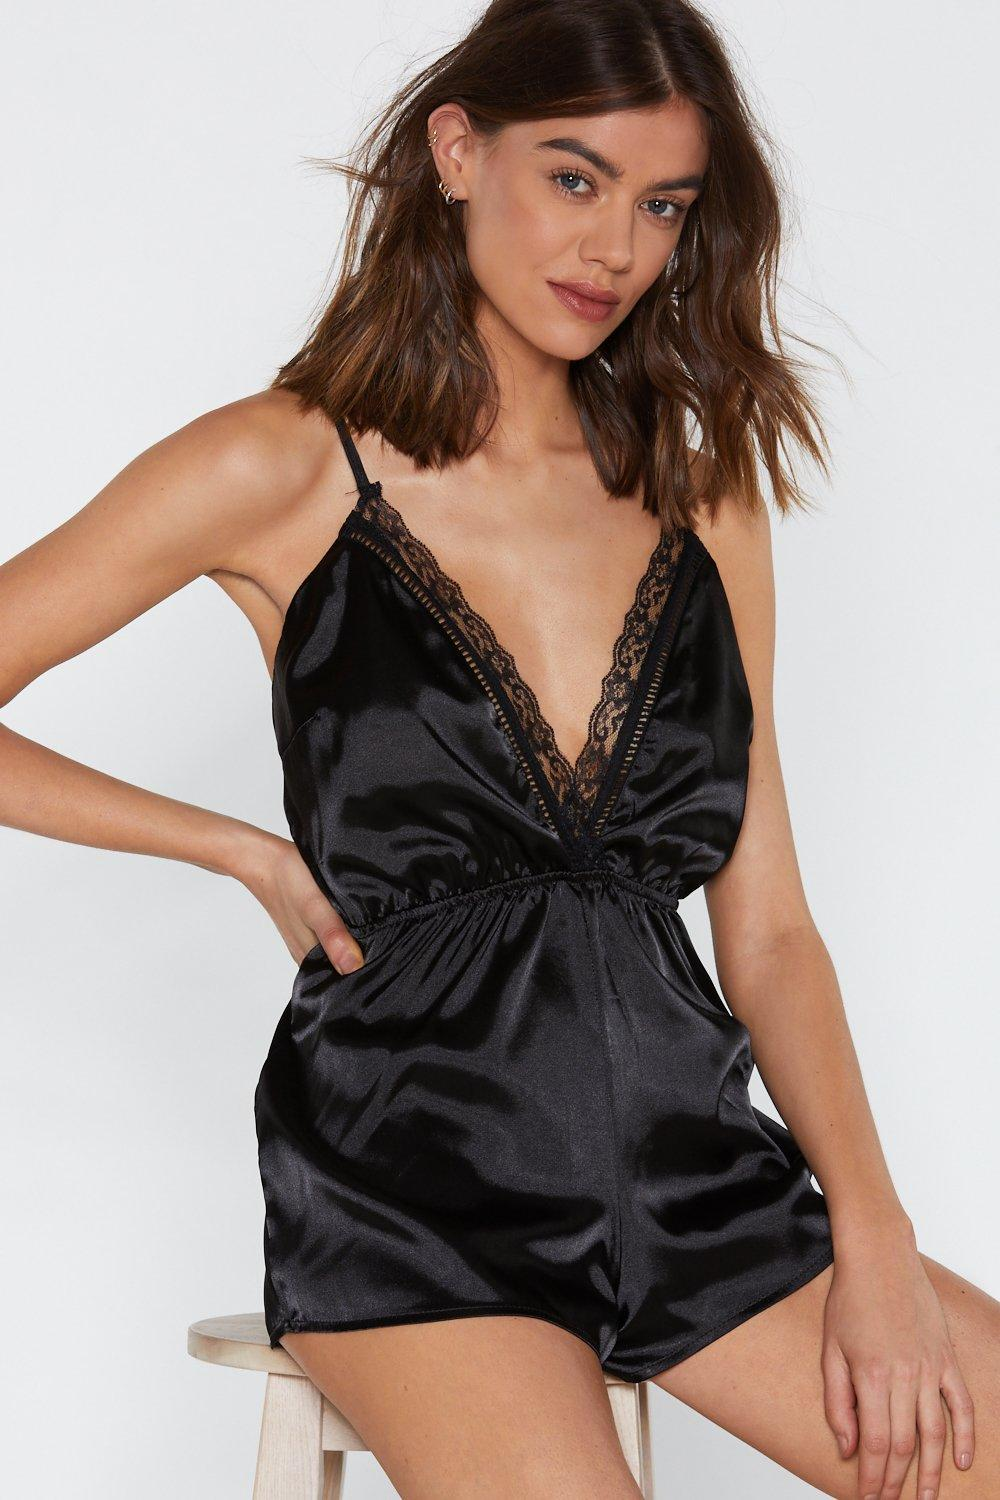 50502ae1e97a3 Dim All the Lights Lace Teddy | Shop Clothes at Nasty Gal!